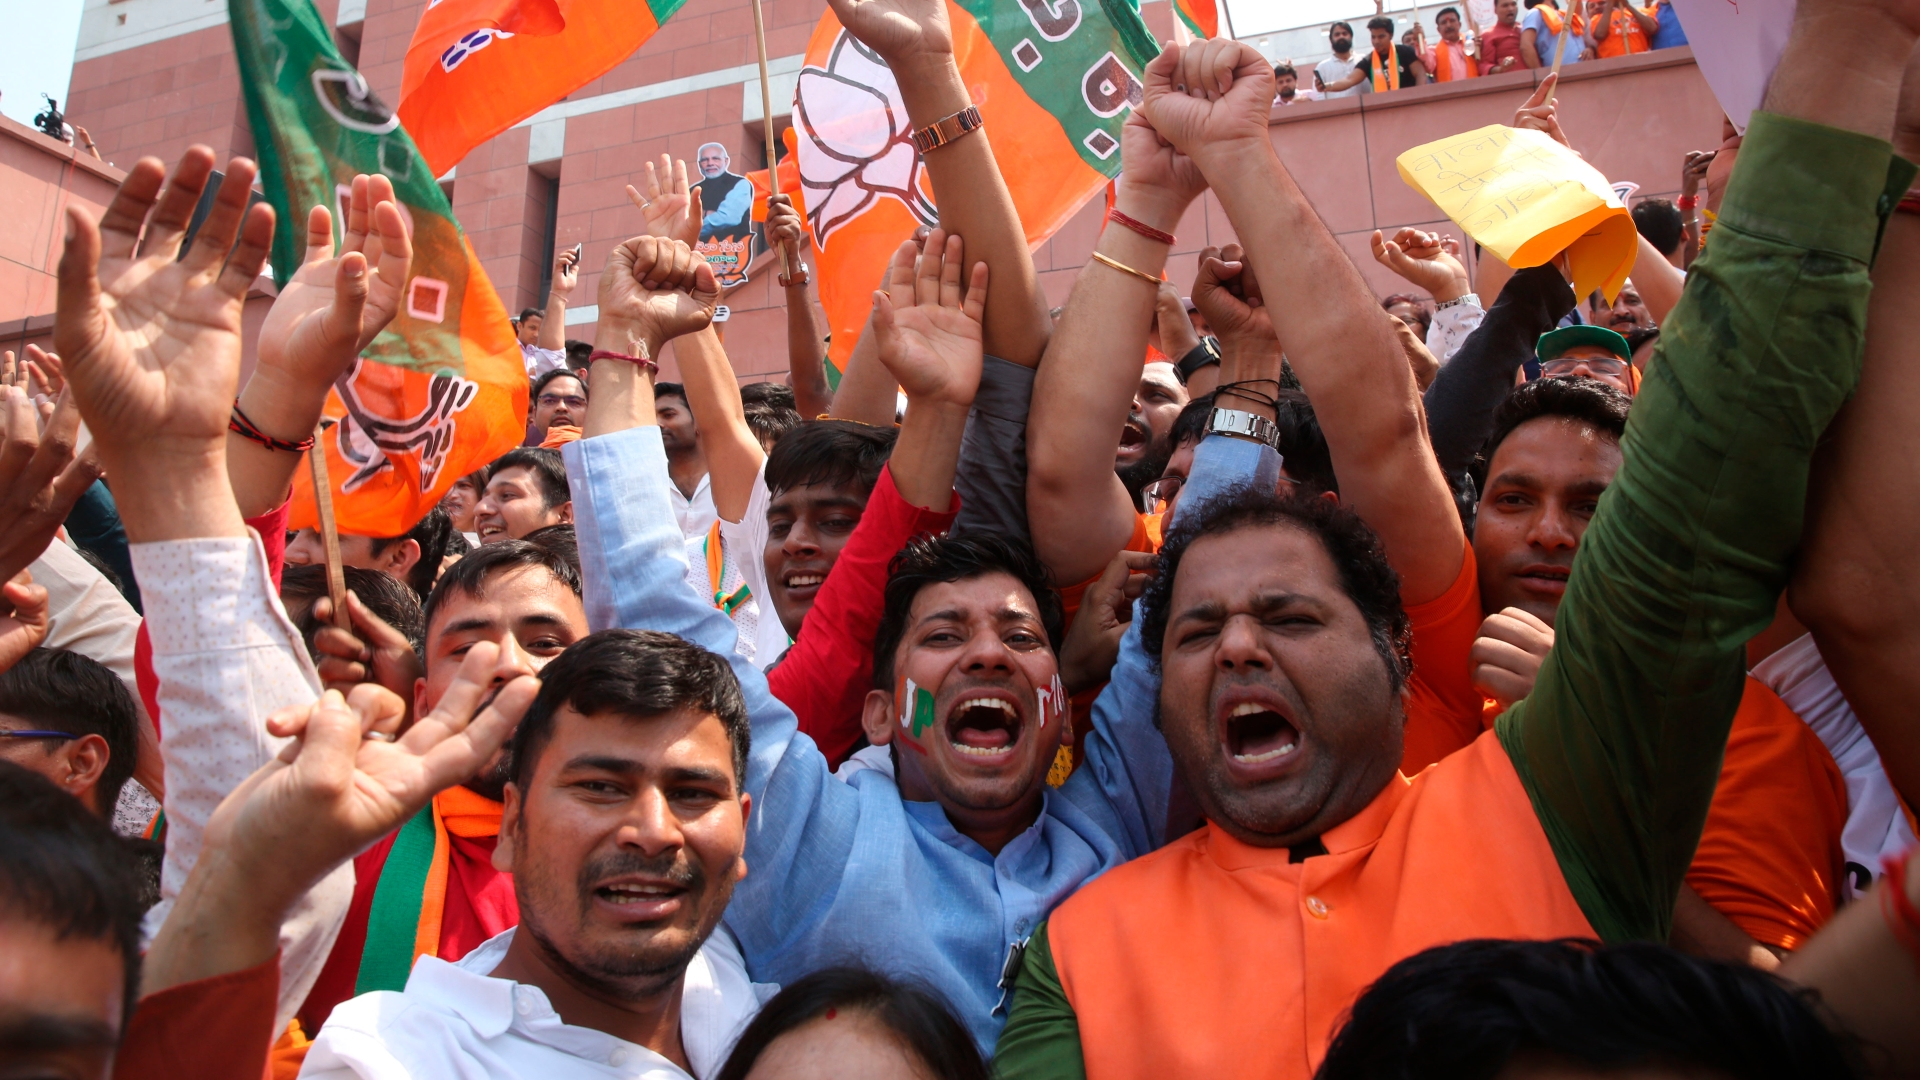 India election results: Modi remains favored to win as counting starts